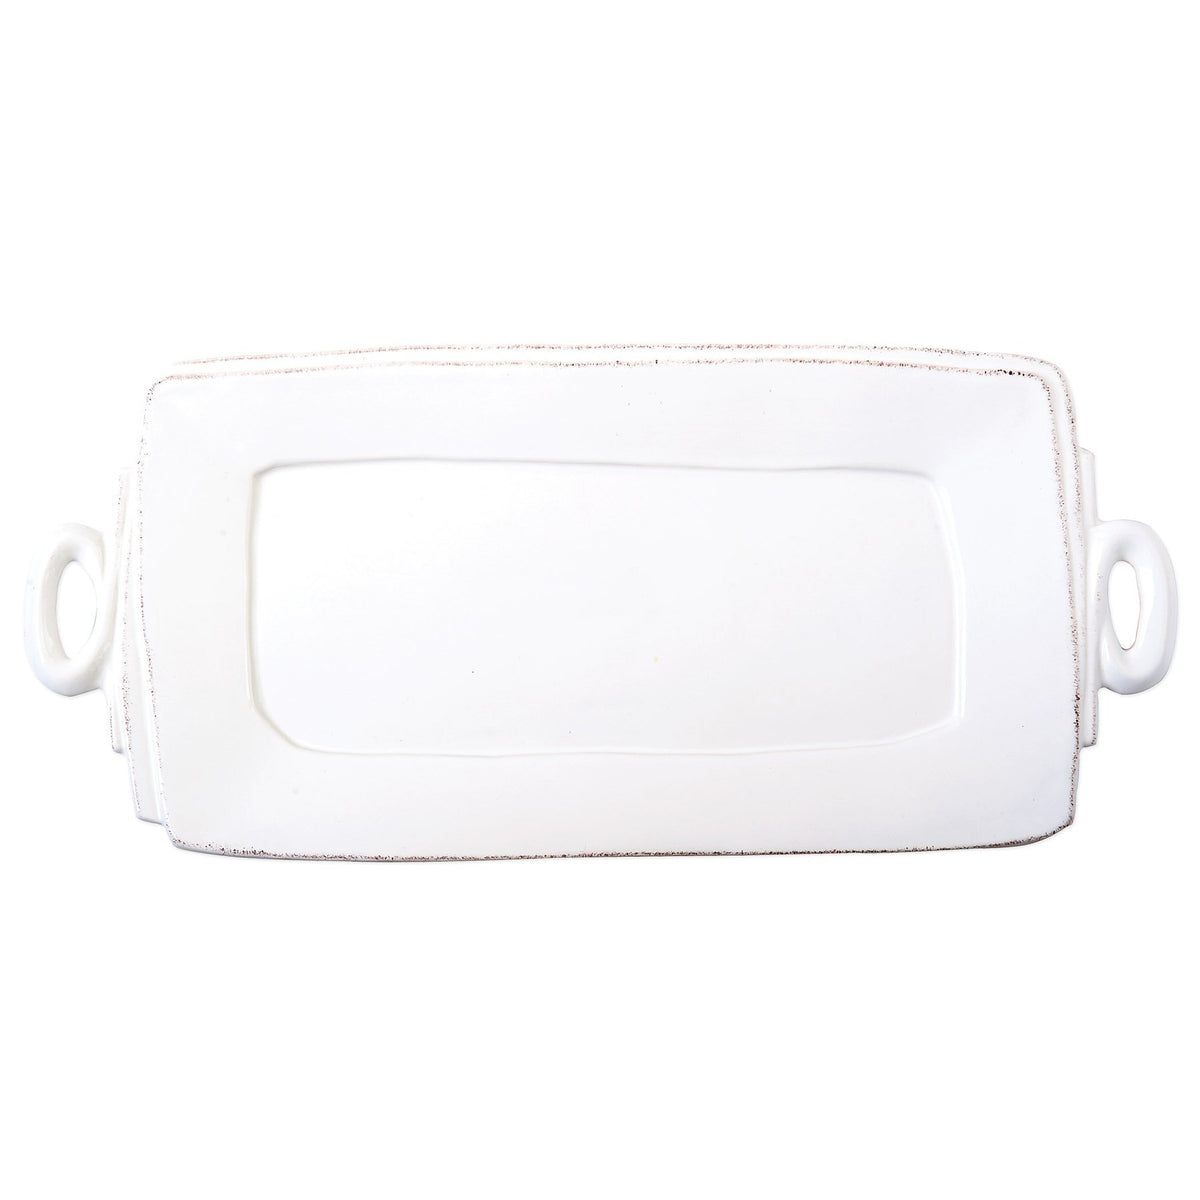 Vietri - Lastra Handled Platter, Rectangle